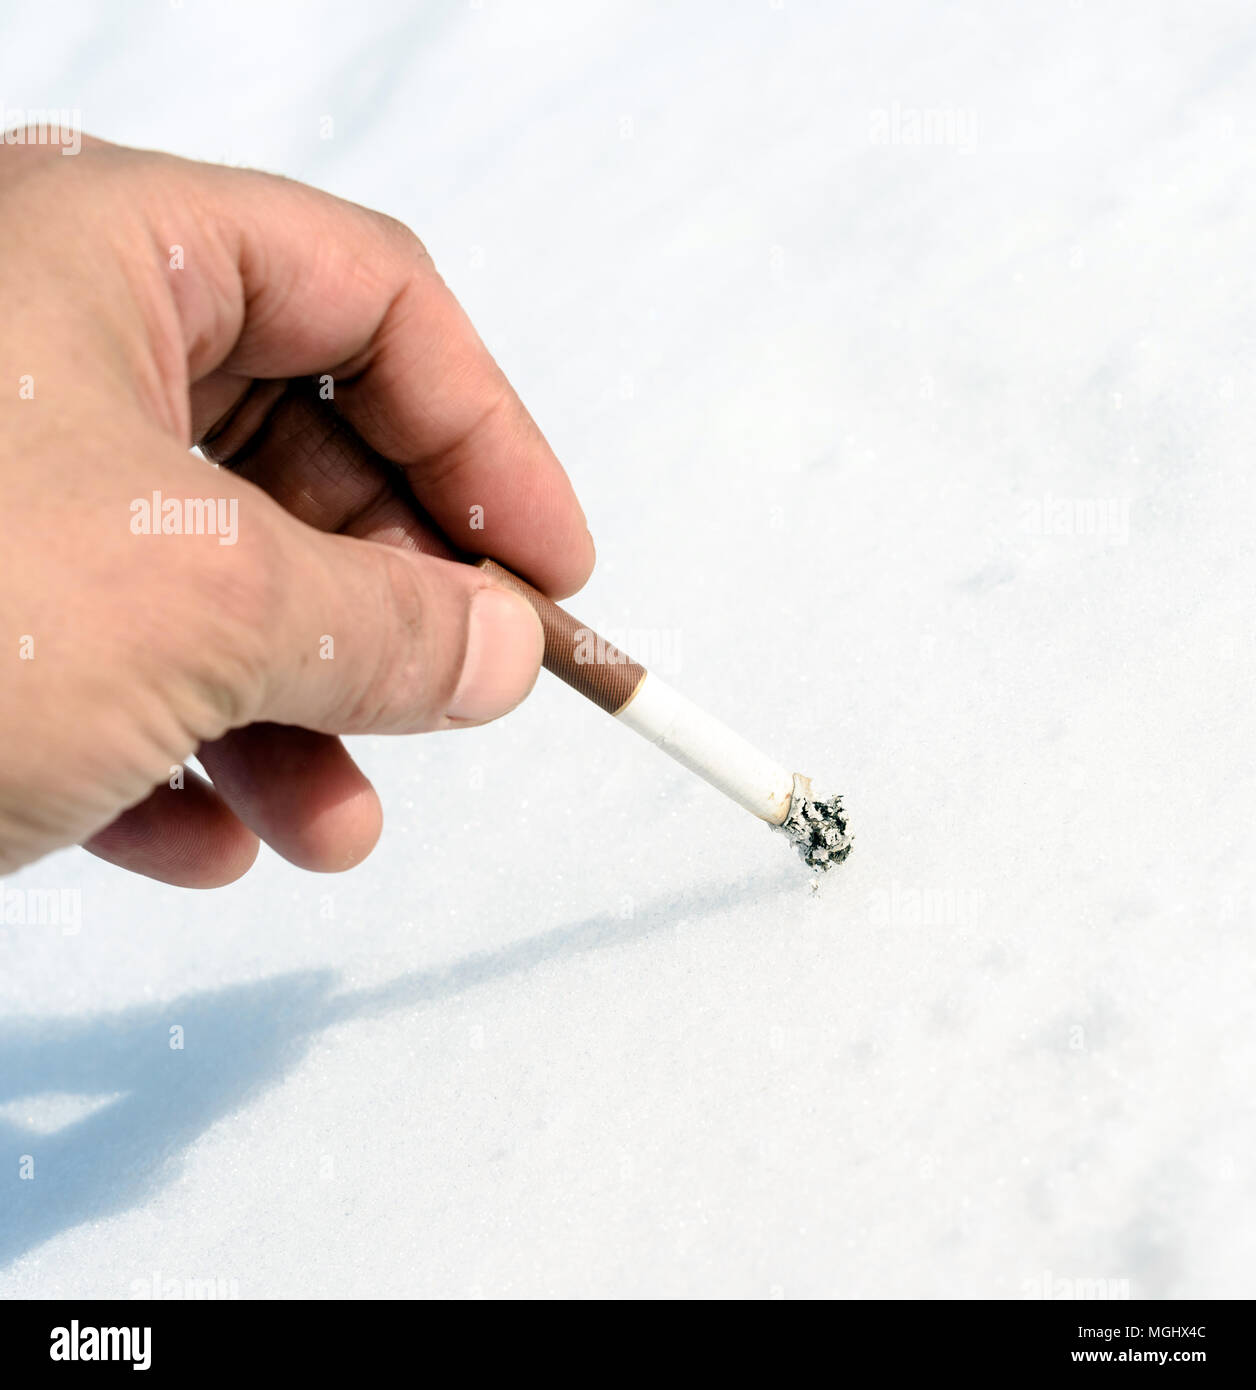 Single male hand stubbing out a smoked cigarette butt into a snow background with copy space area for nicotine addiction and smoking related health de Stock Photo